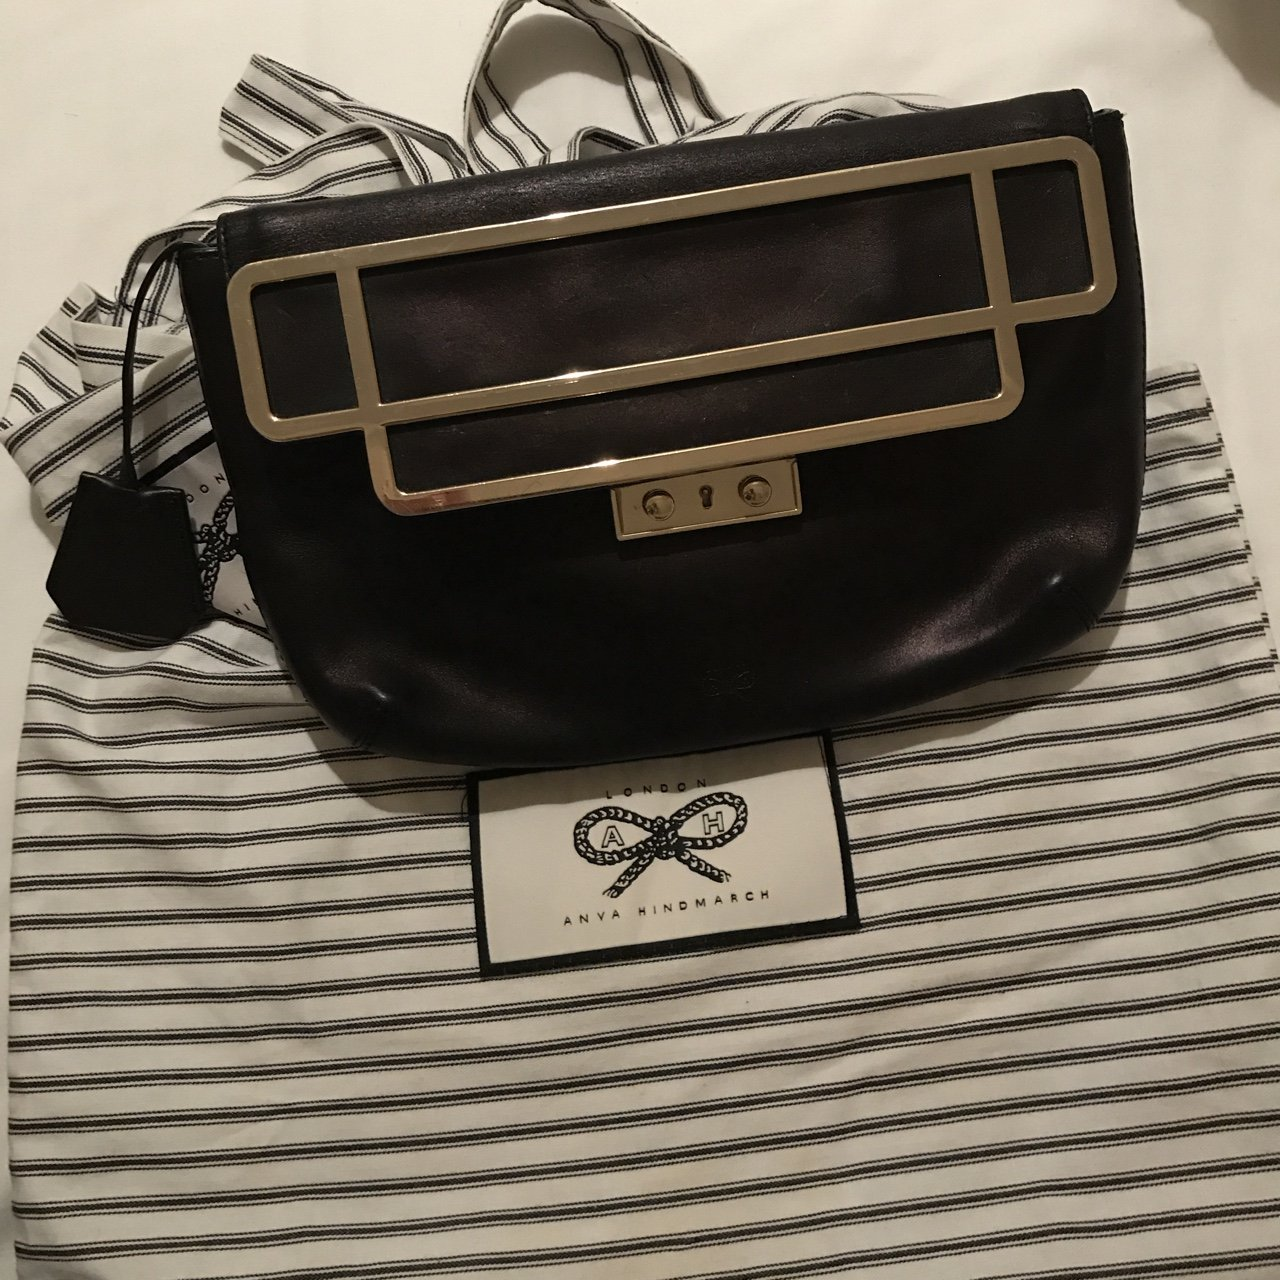 14f2cafb1bf9 Anya Hindmarch Black leather clutch